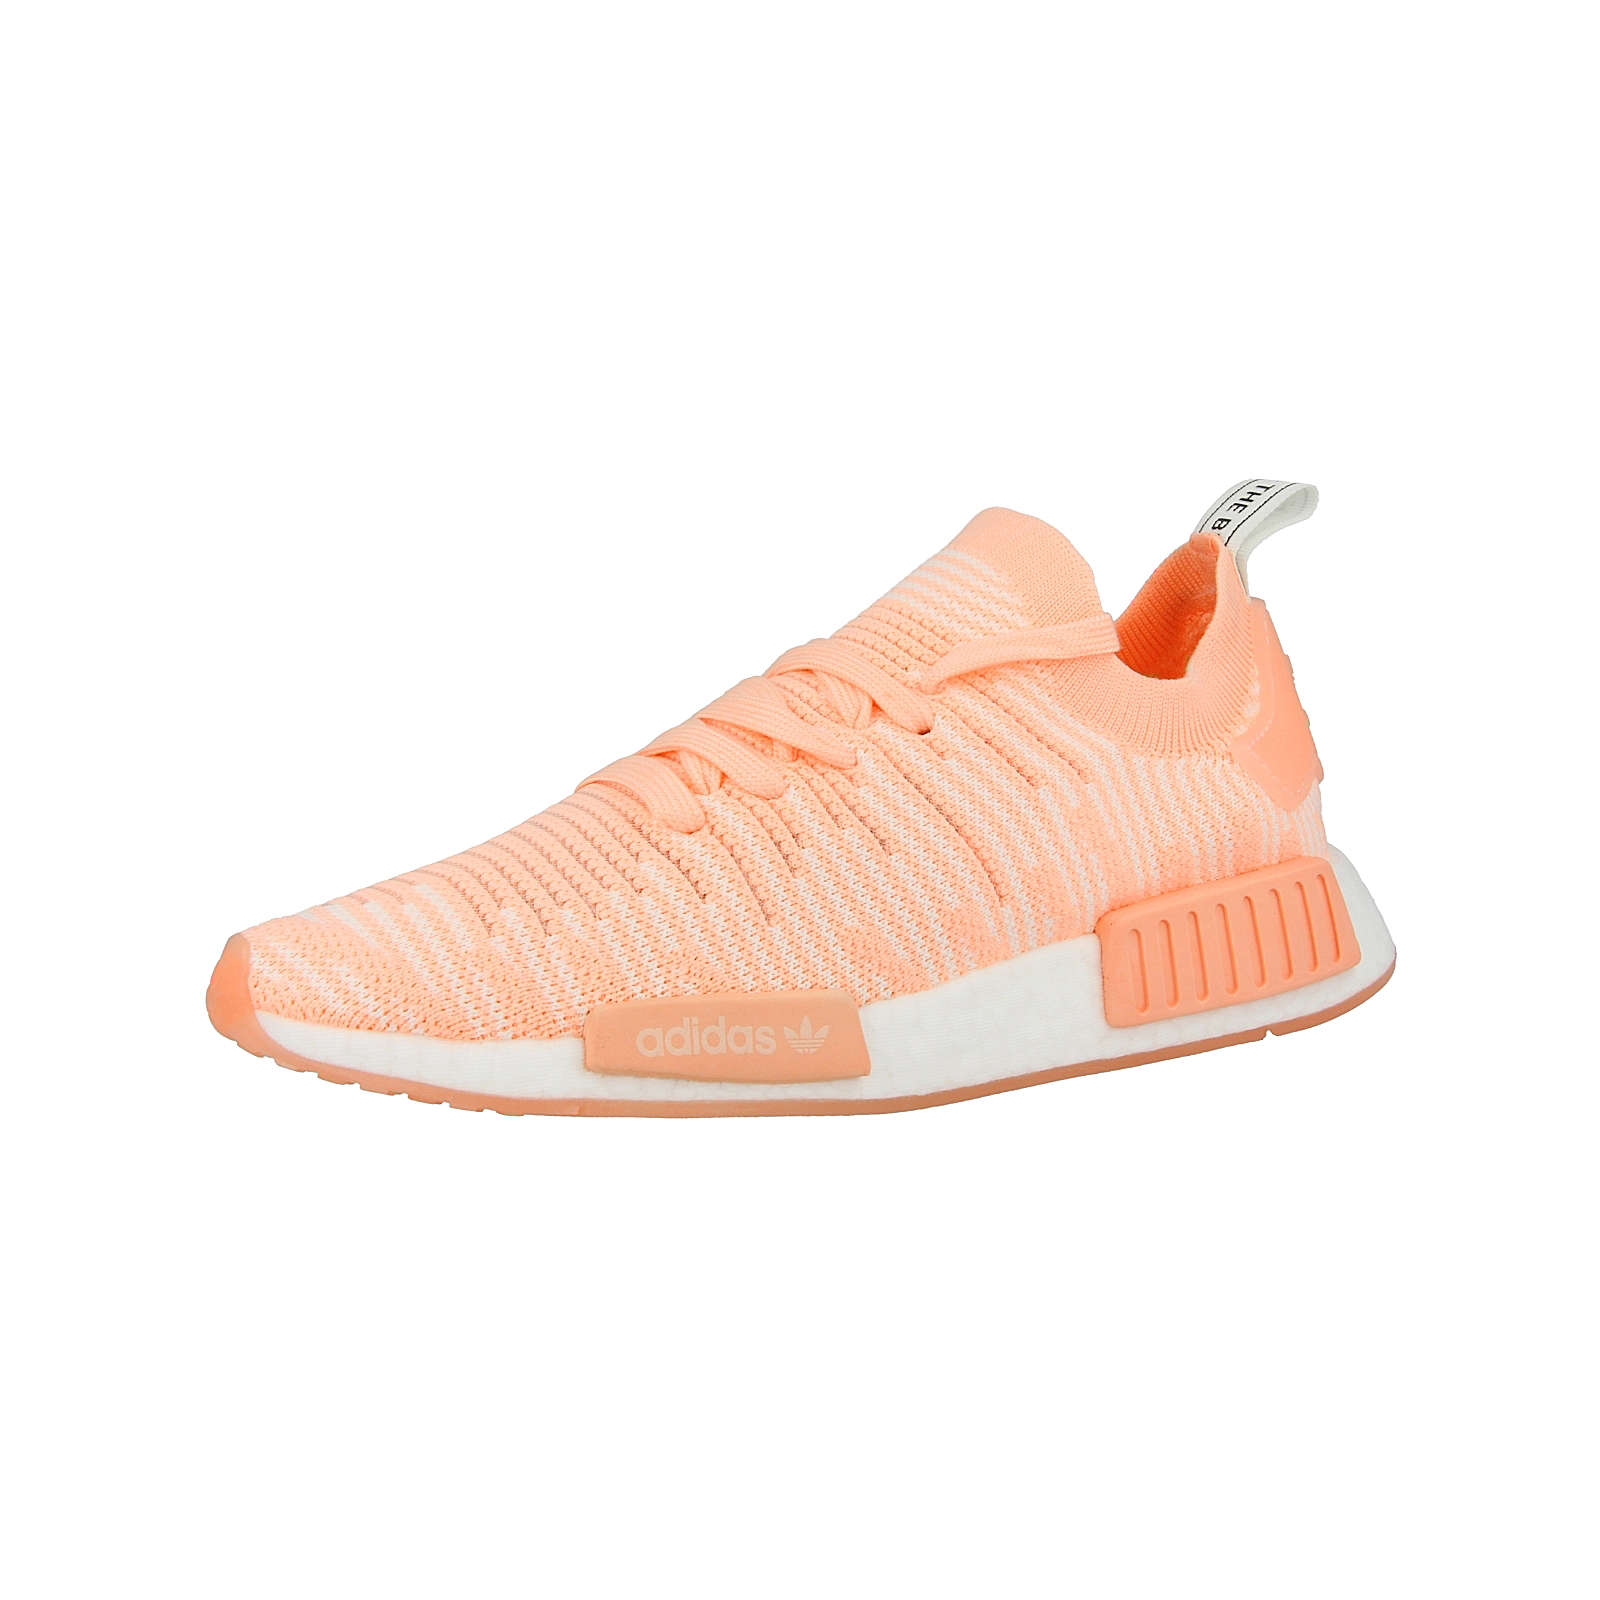 adidas Originals NMD_R1 STLT Primeknit orange Damen Gr. 38 2/3